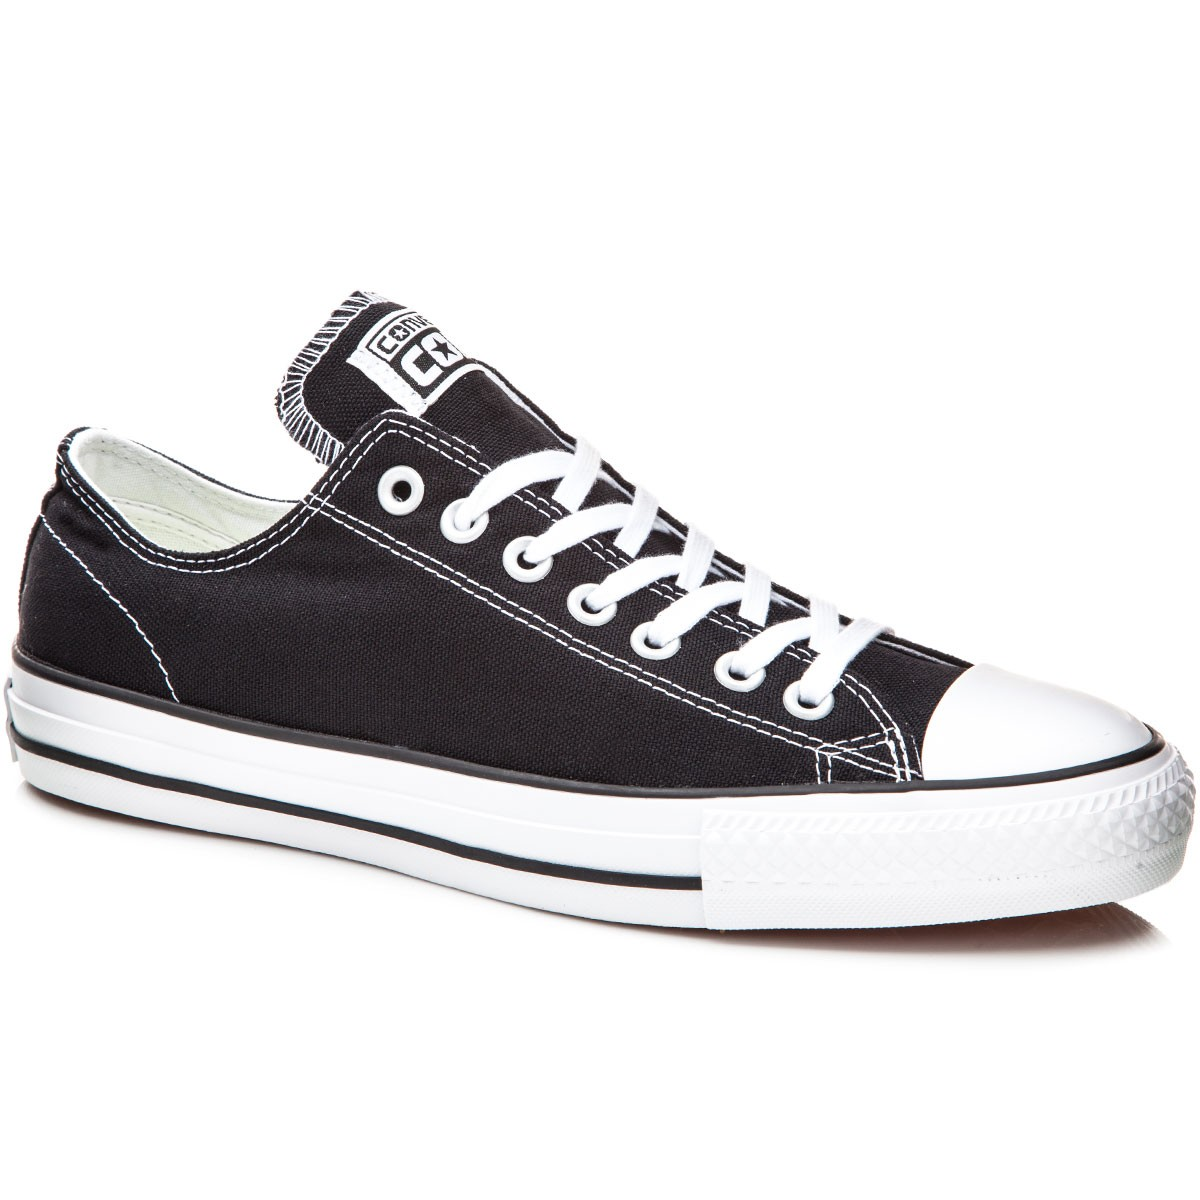 3dc08bdf731ad4 ... converse ctas pro ox shoes  converse shoes black leather high tops wall  white base poshmark  new converse chuck taylor all star leather high top ...